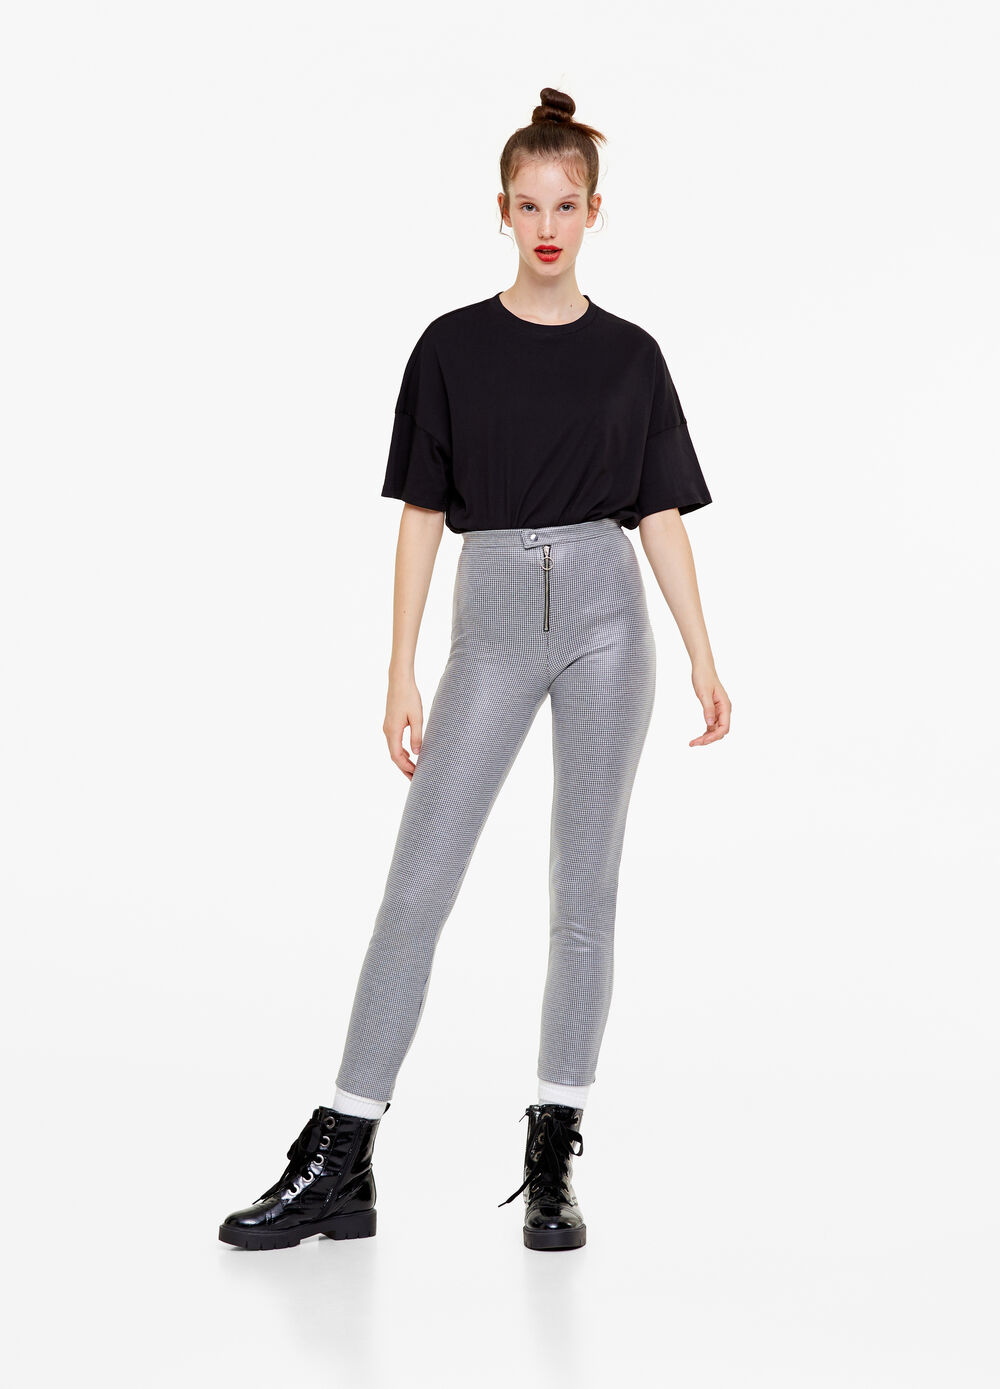 High-waisted leggings with zip